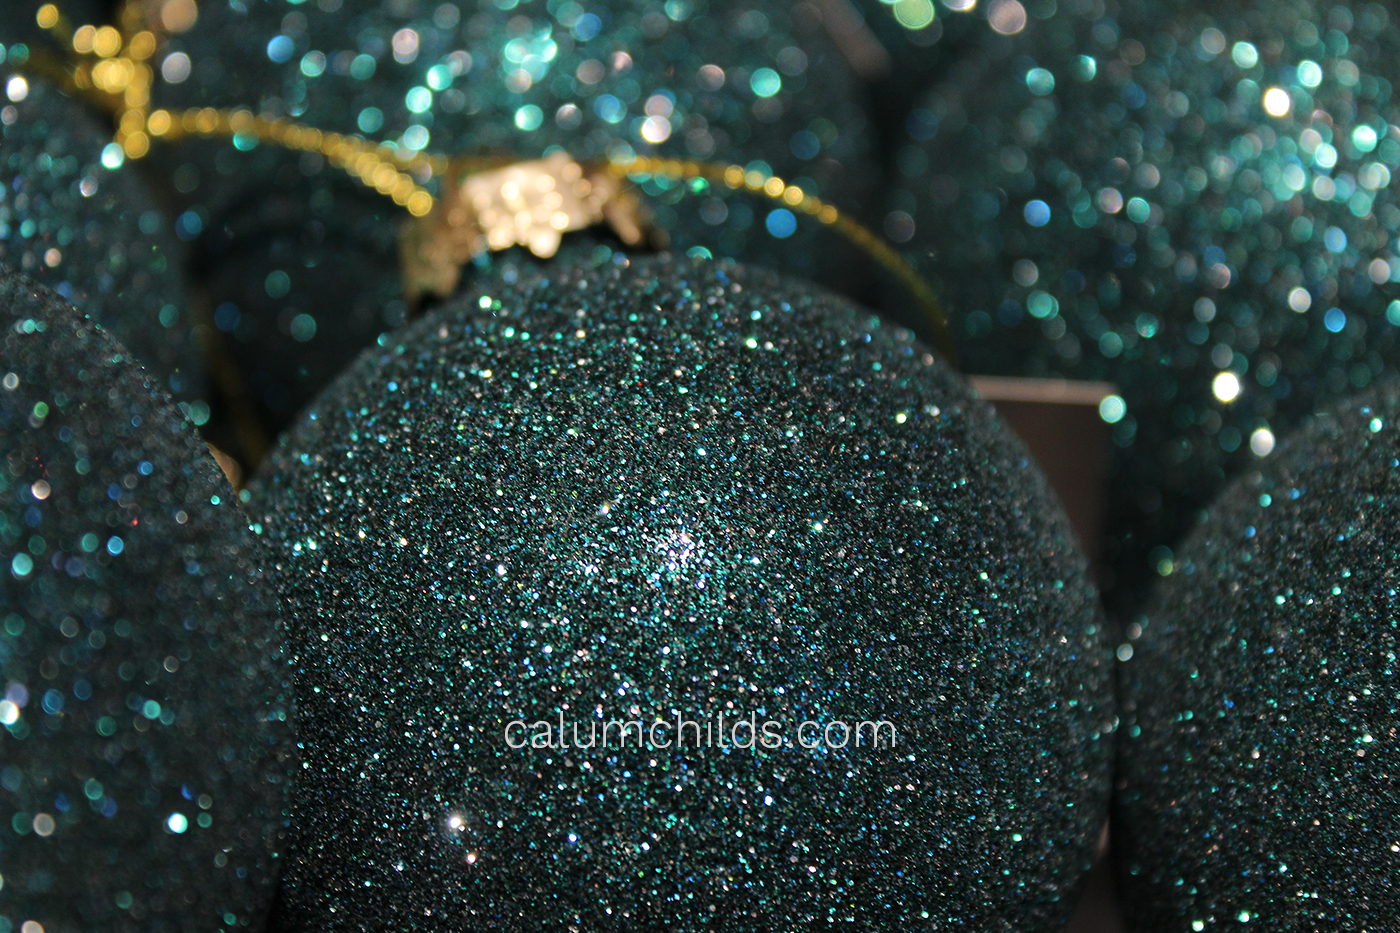 A bauble covered in blue glitter.